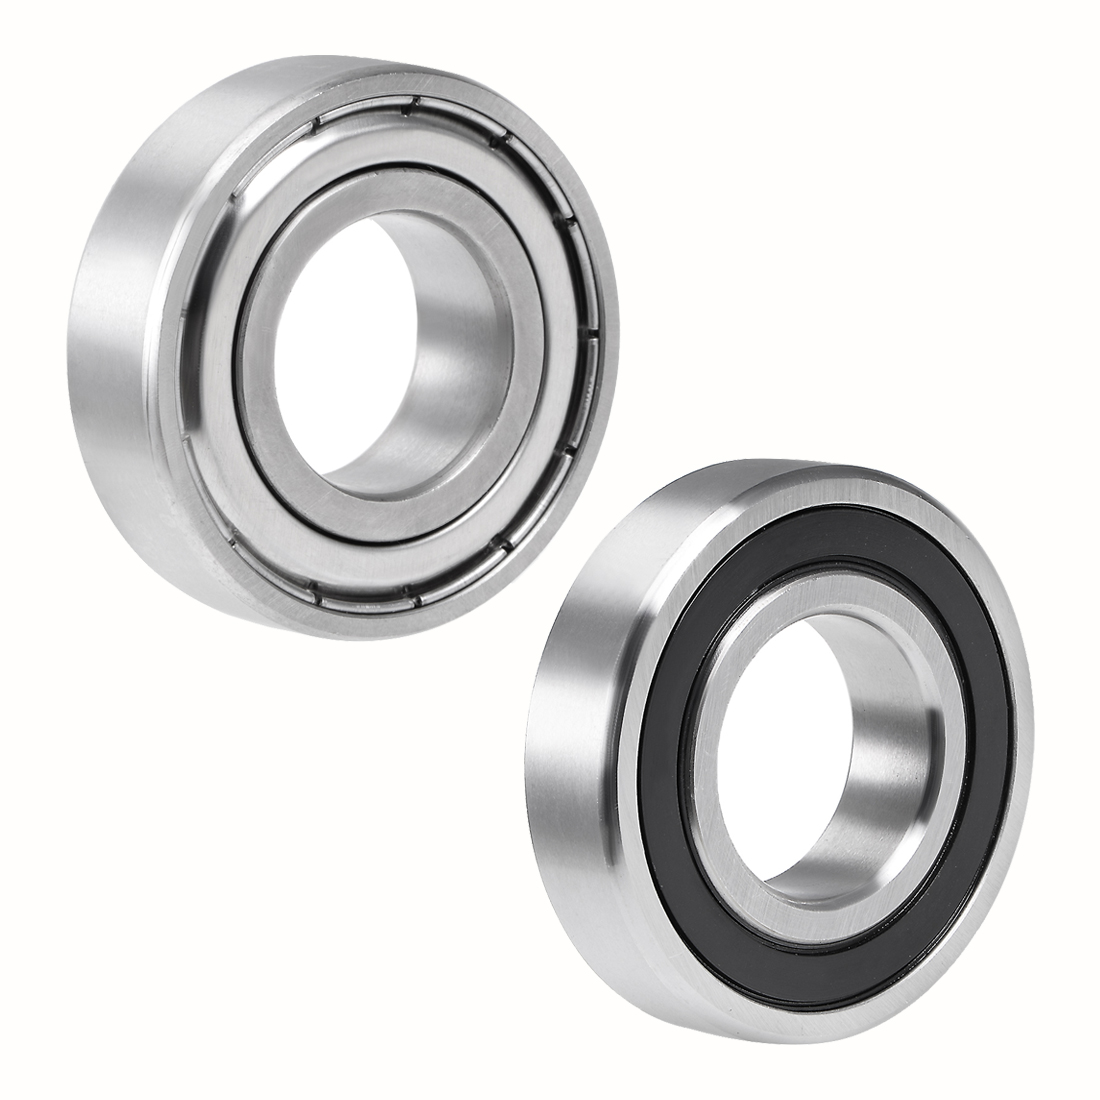 uxcell 1pcs V-Groove Ball Bearing Guide Pulley Bearings Shielded Type for 10mm 14mm 20mm 30mm Shaft image